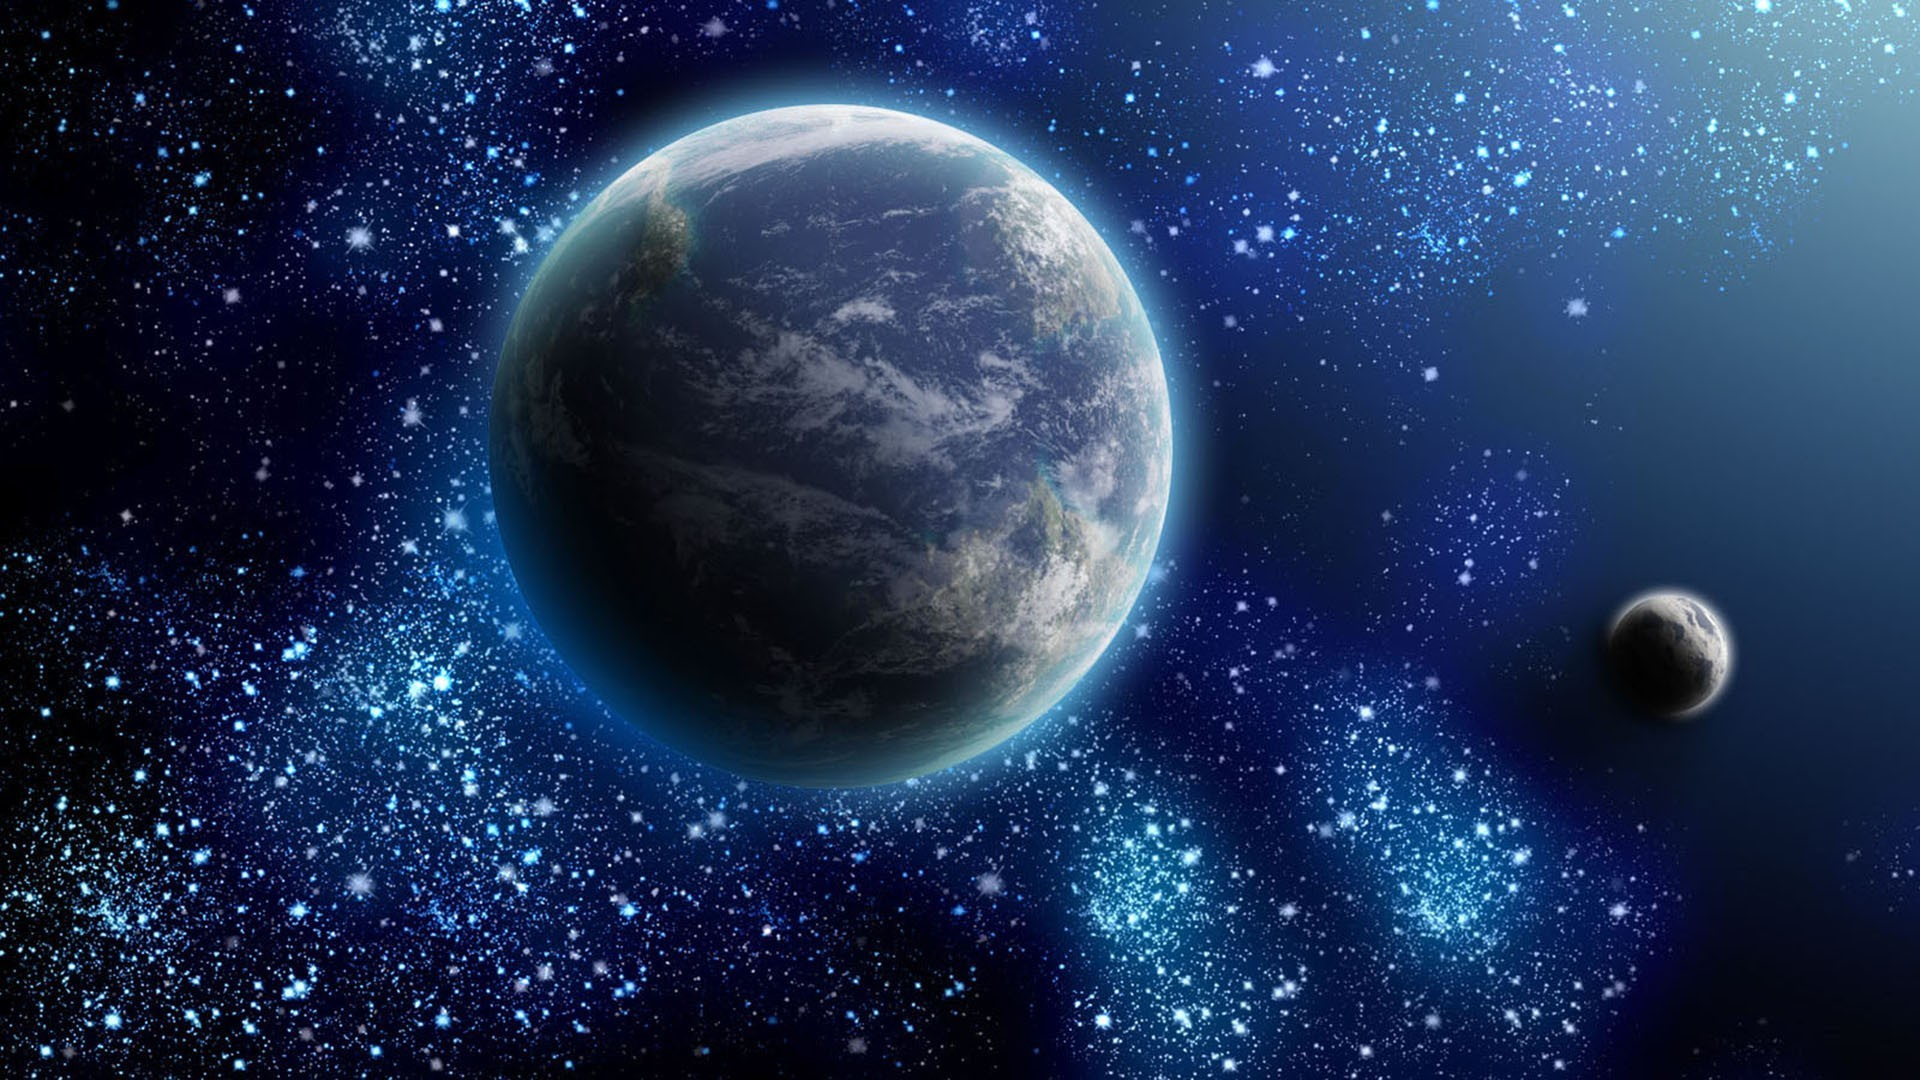 Earth and moon surrounded by stars wallpaper #3515